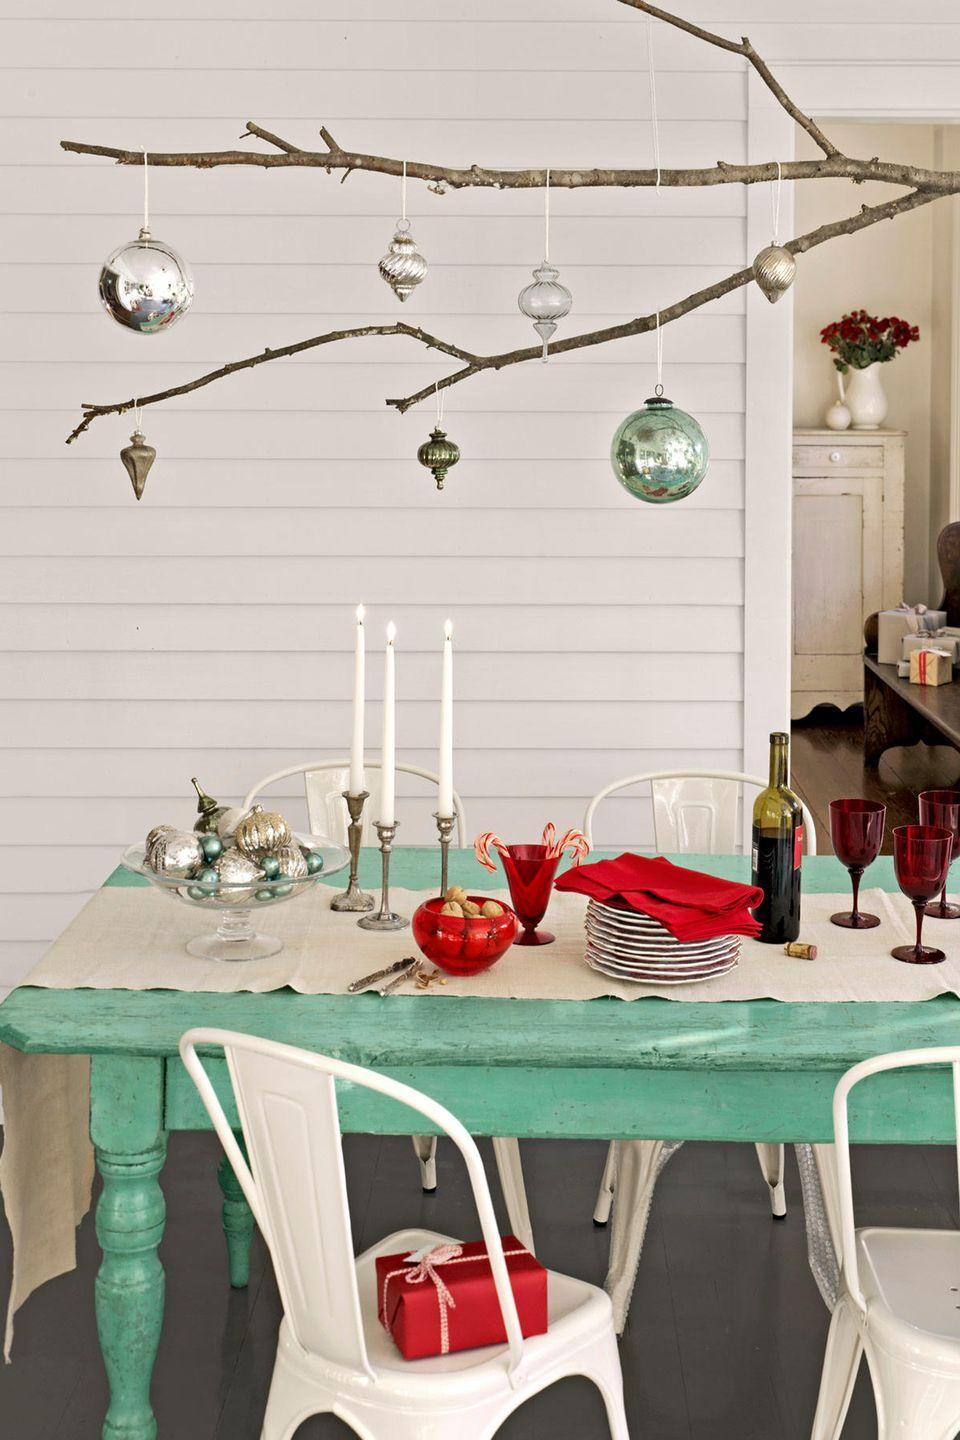 "<p>Branch out from conventional tablescapes by using an extra-long tree limb as a platform for displaying ornaments. Simply knot lengths of twine around the branch and hang it from a row of five or six ceiling hooks.</p><p><a class=""link rapid-noclick-resp"" href=""https://www.amazon.com/s/ref=nb_sb_noss_1?url=search-alias%3Daps&field-keywords=christmas+ornaments&tag=syn-yahoo-20&ascsubtag=%5Bartid%7C10050.g.644%5Bsrc%7Cyahoo-us"" rel=""nofollow noopener"" target=""_blank"" data-ylk=""slk:SHOP ORNAMENTS"">SHOP ORNAMENTS</a></p>"